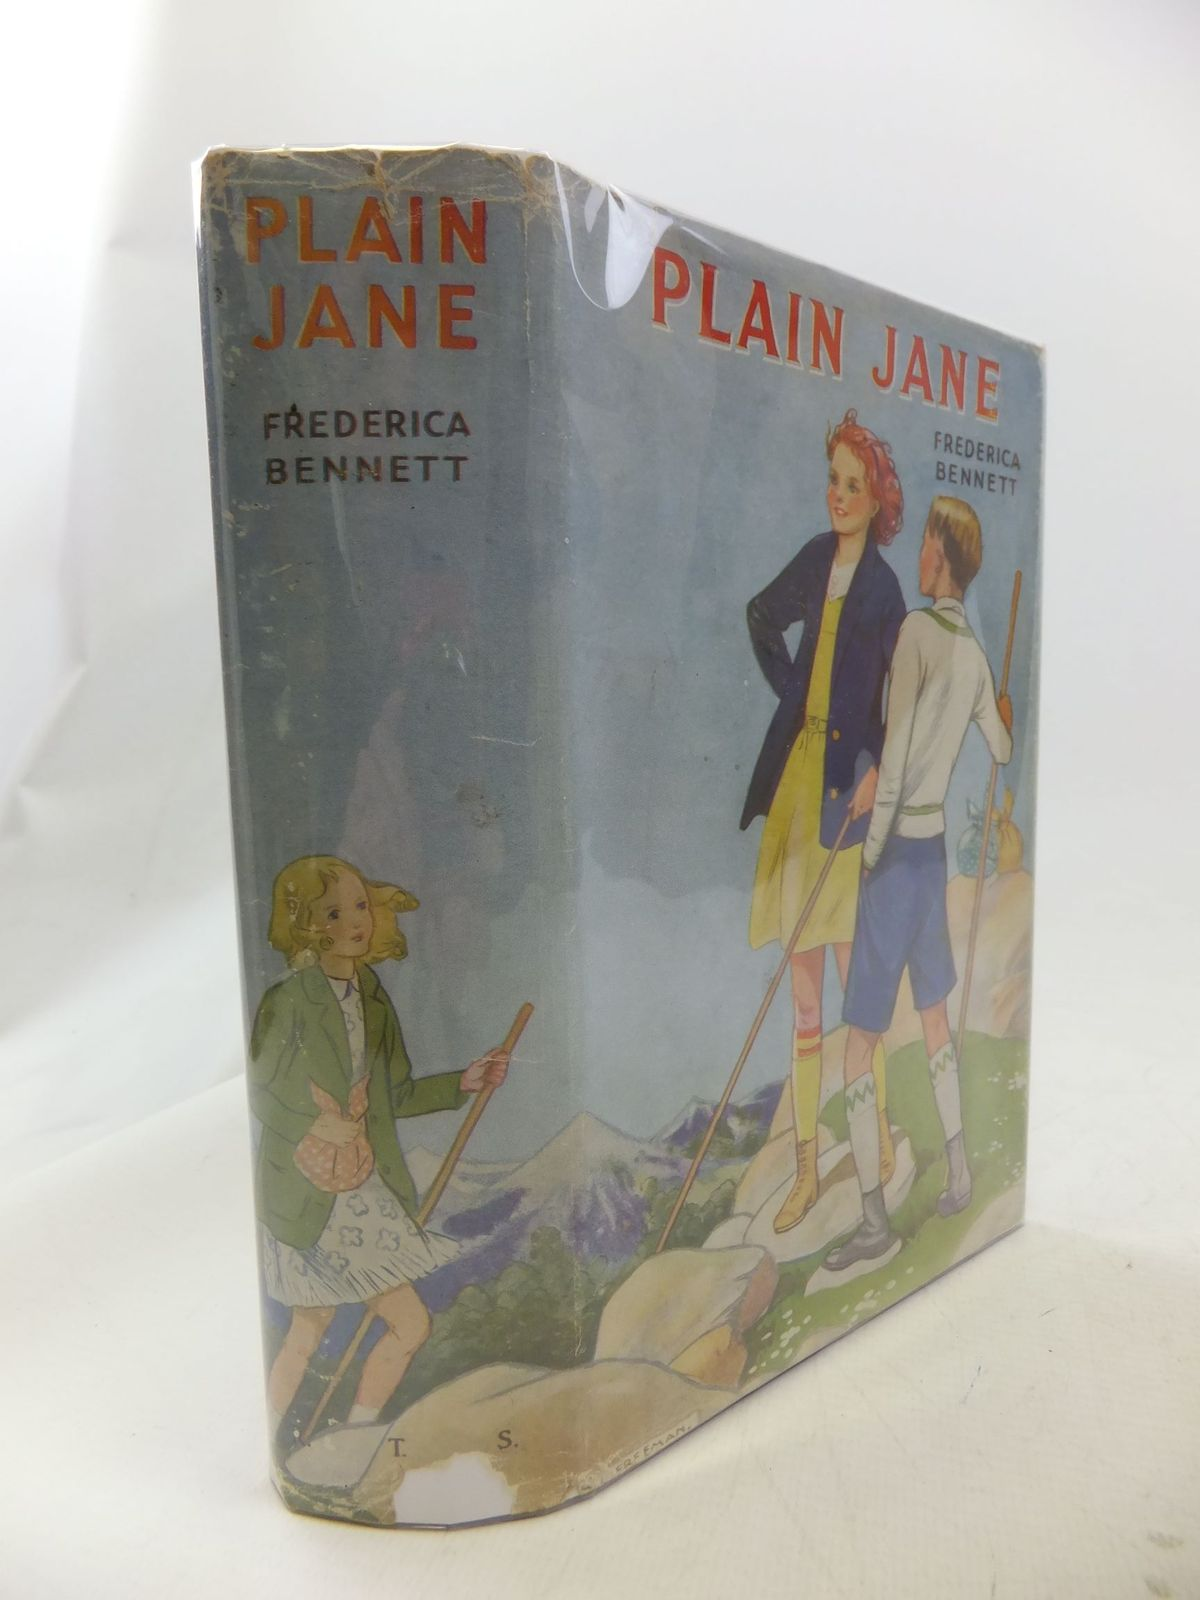 Photo of PLAIN JANE written by Bennett, Frederica illustrated by Freeman, Barbara C. published by The Girl's Own Paper Office (STOCK CODE: 1710929)  for sale by Stella & Rose's Books